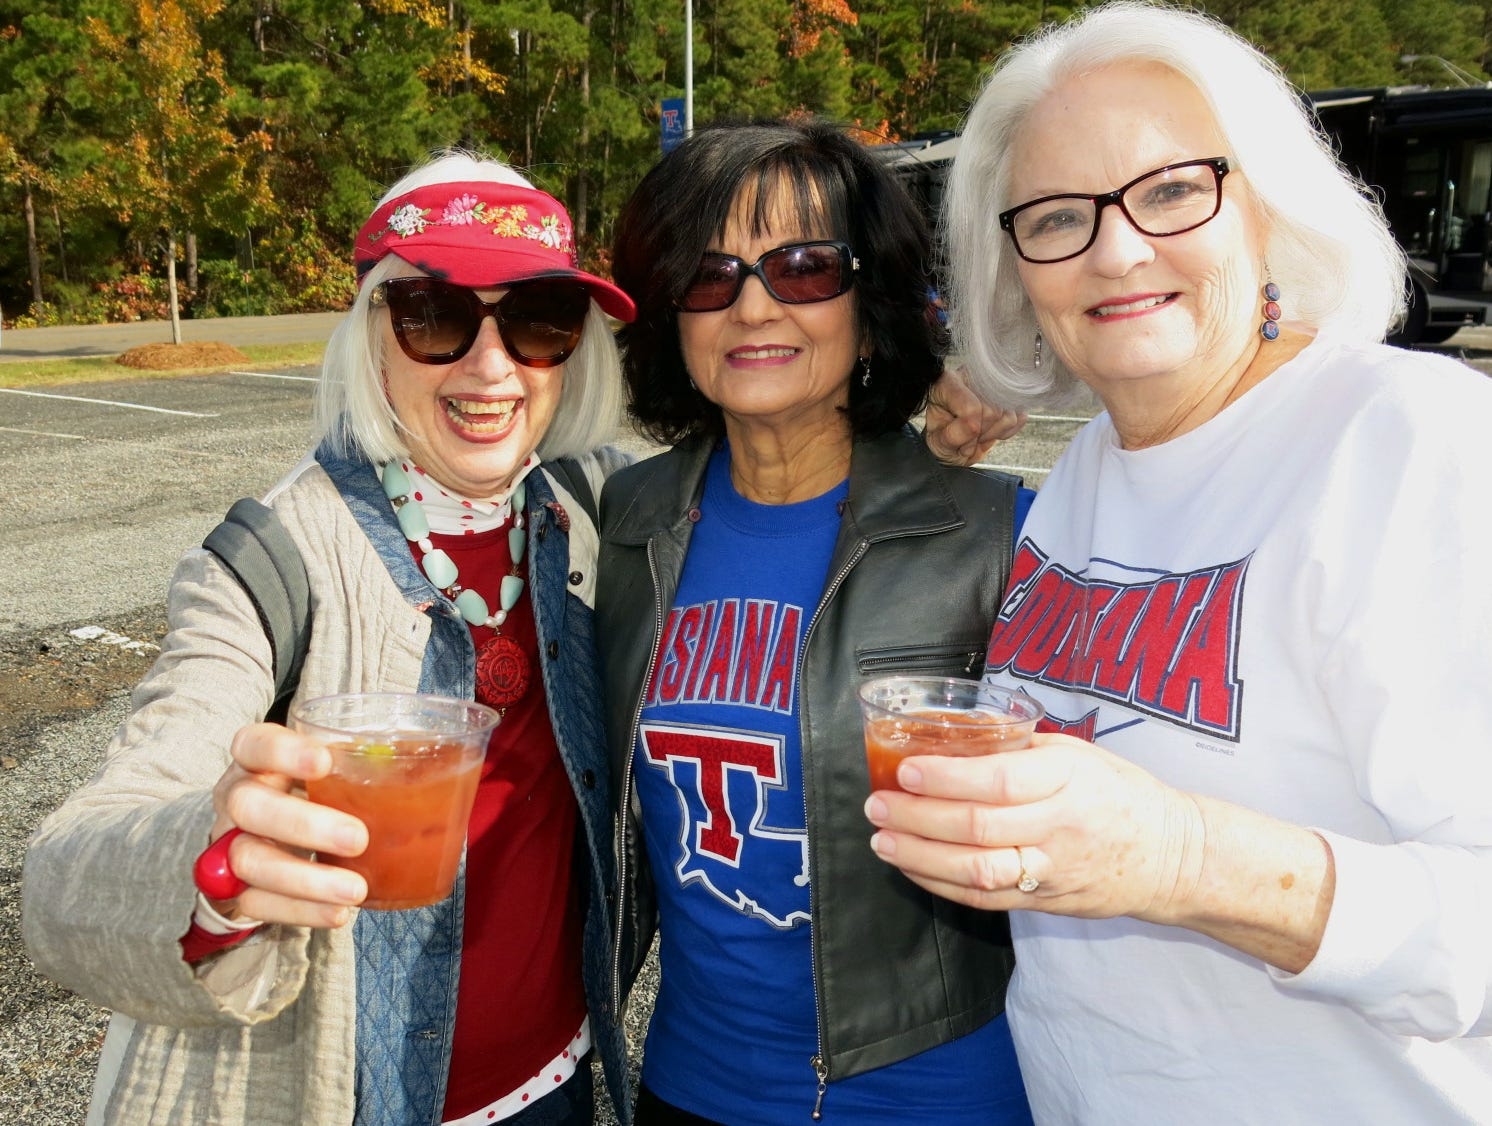 Fan Breakfast Nov. 24 at Louisiana Tech-Western Kentucky football game in Joe Aillet Stadium.